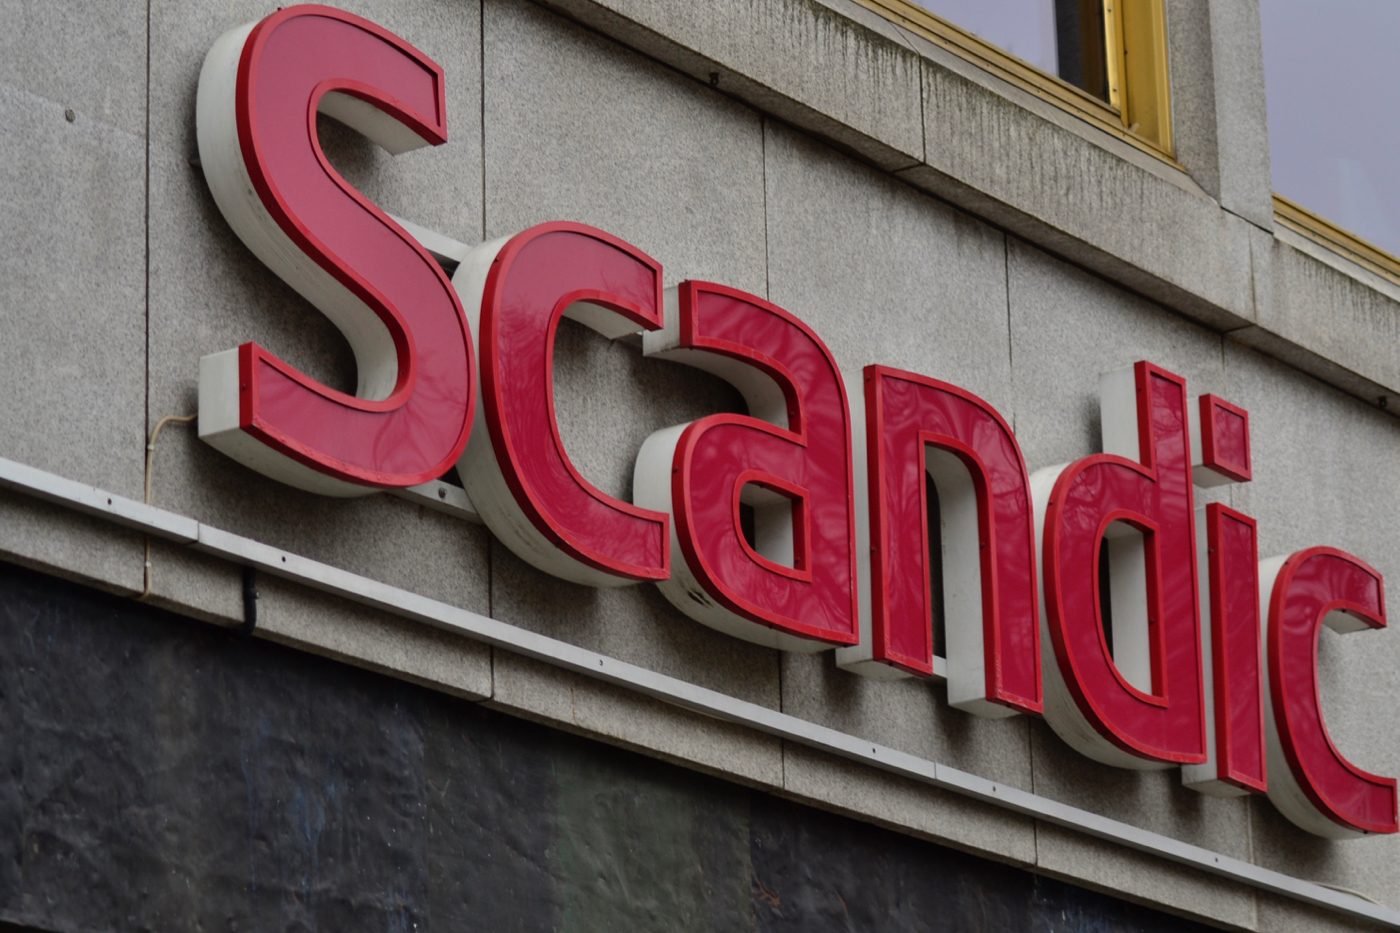 scandic anglais signage letters stockholm